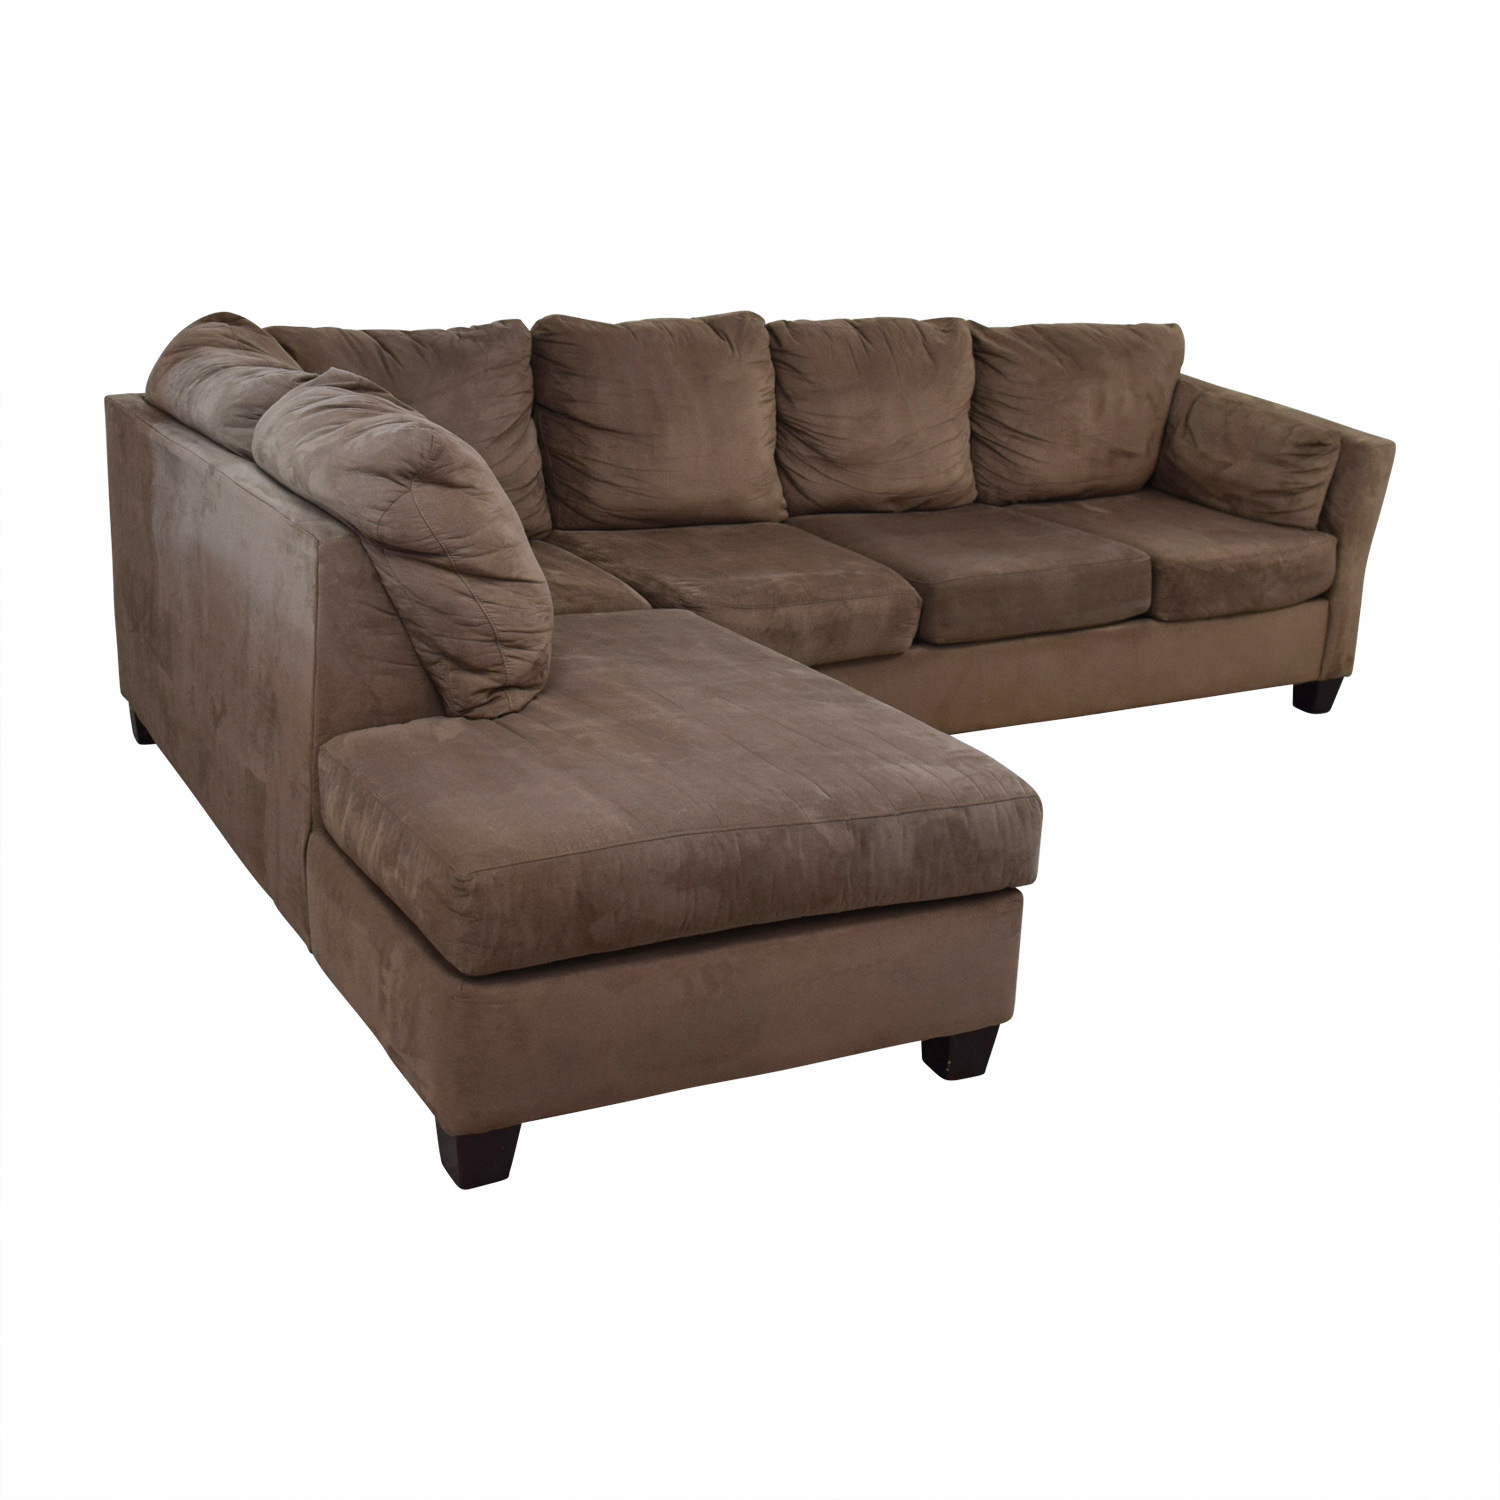 52 Off Bob 39 S Furniture Bob 39 S Furniture Brown Microfiber Sectional Sofas